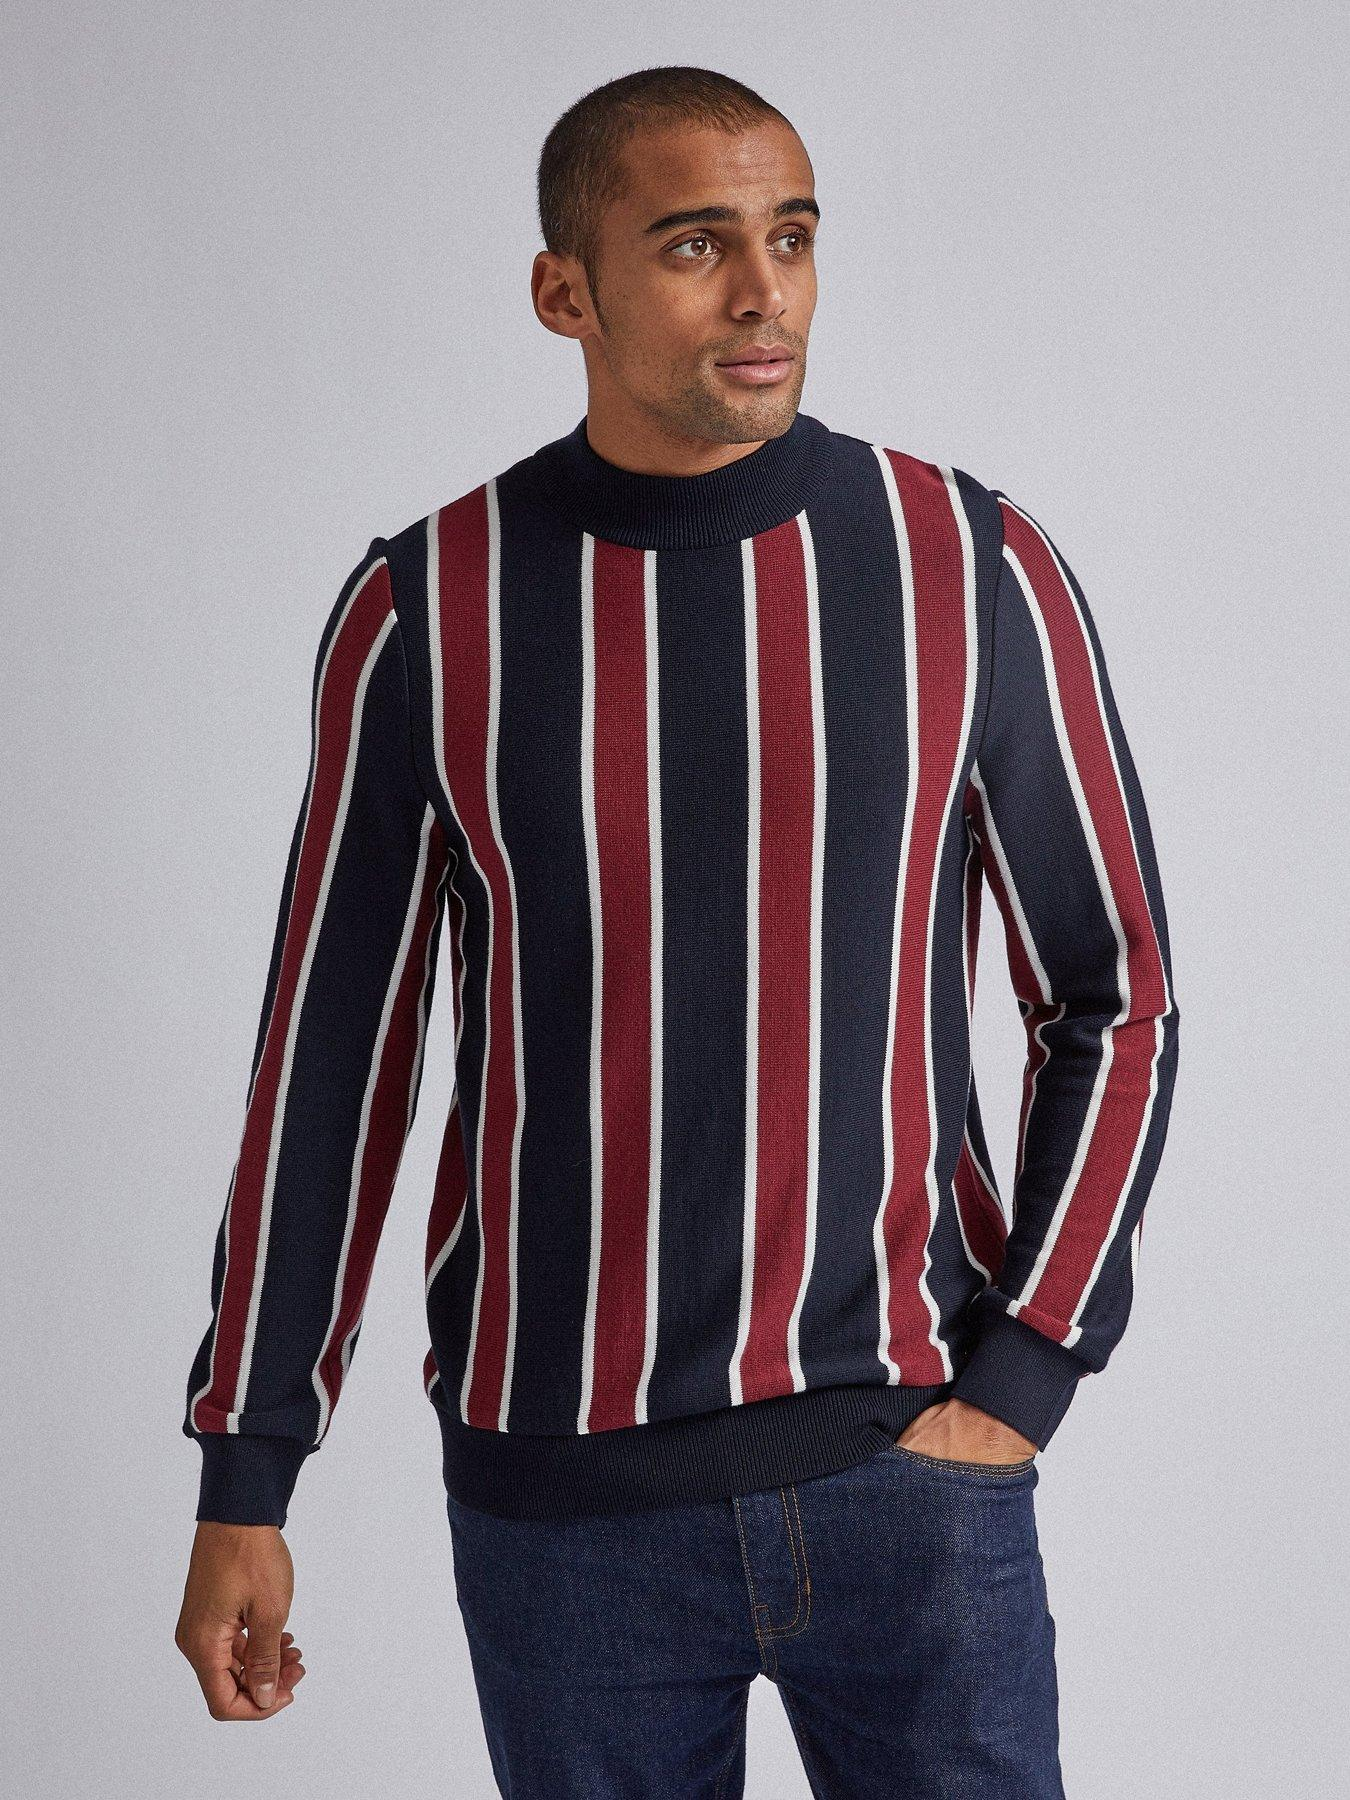 Mens Roll Neck Jumper Long Sleeve Sweater Plain Stretch Classic Casual S-2XL